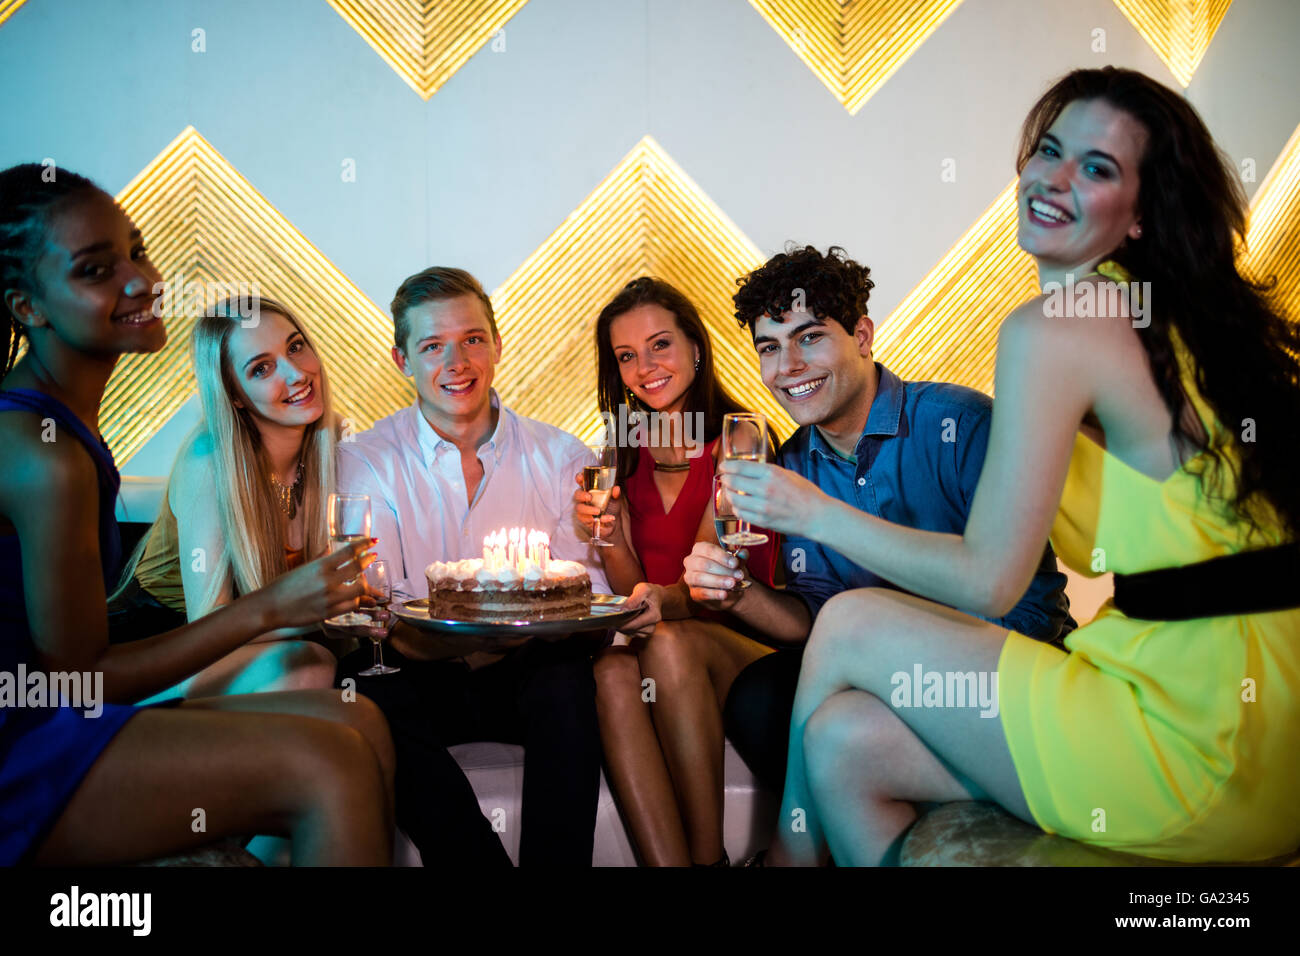 Group of smiling friends having a glass of champagne while celebrating birthday - Stock Image